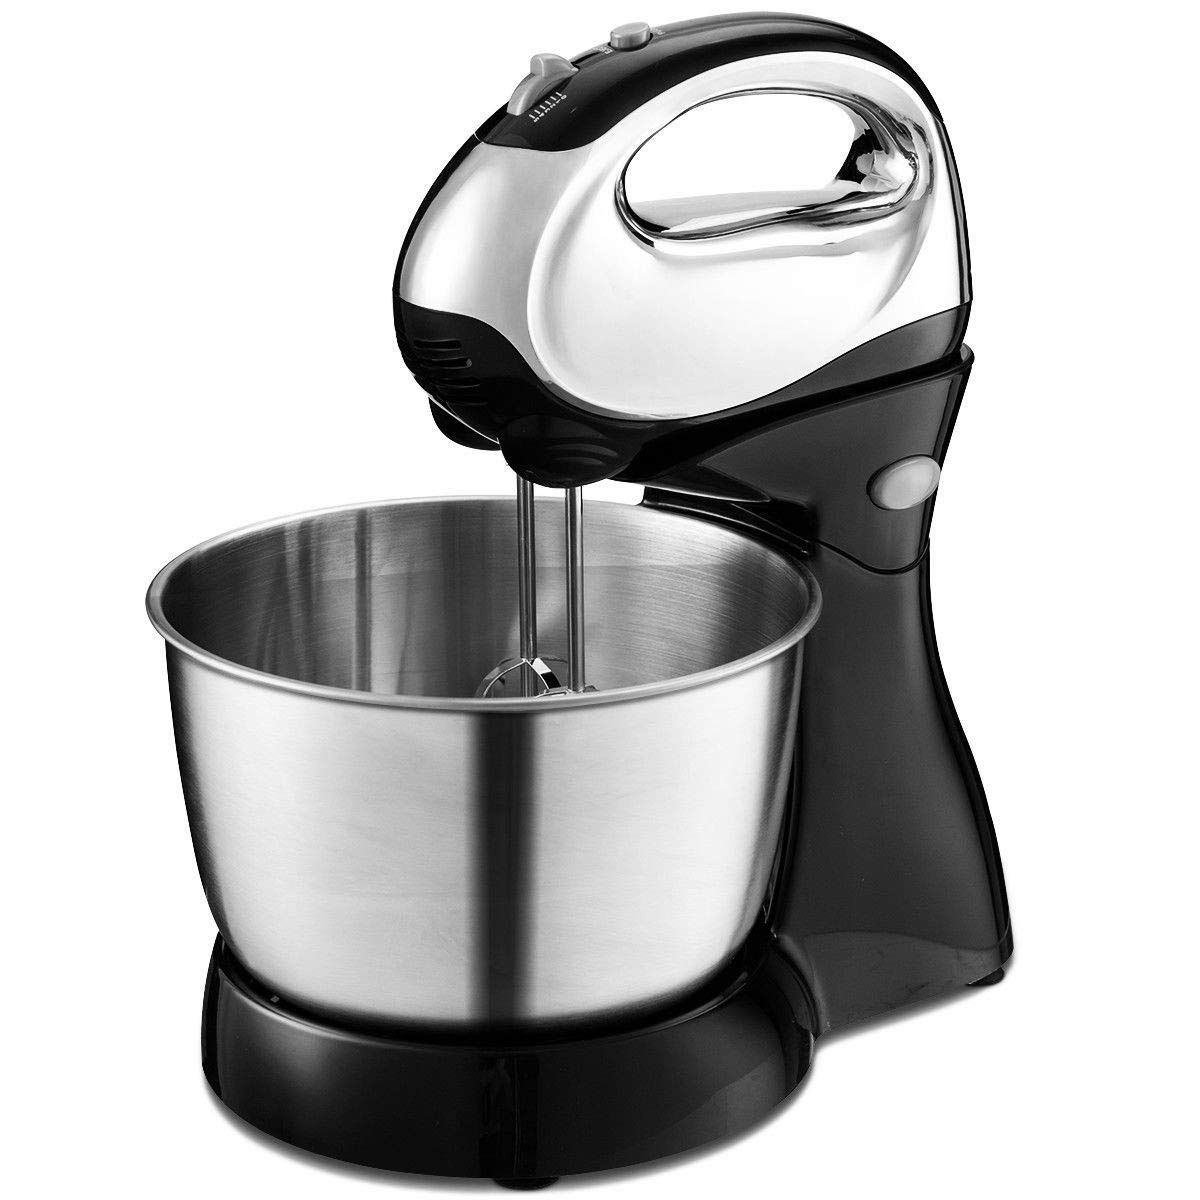 BeUniqueToday 200W 5-Speed Stand Mixer With Dough Hooks Beaters, Convenient Stand Mixer With Dough Hooks Beaters 200W 5-Speed, 200 Watts Motor 5-Speed Stand Mixer With Dough Hooks Beaters